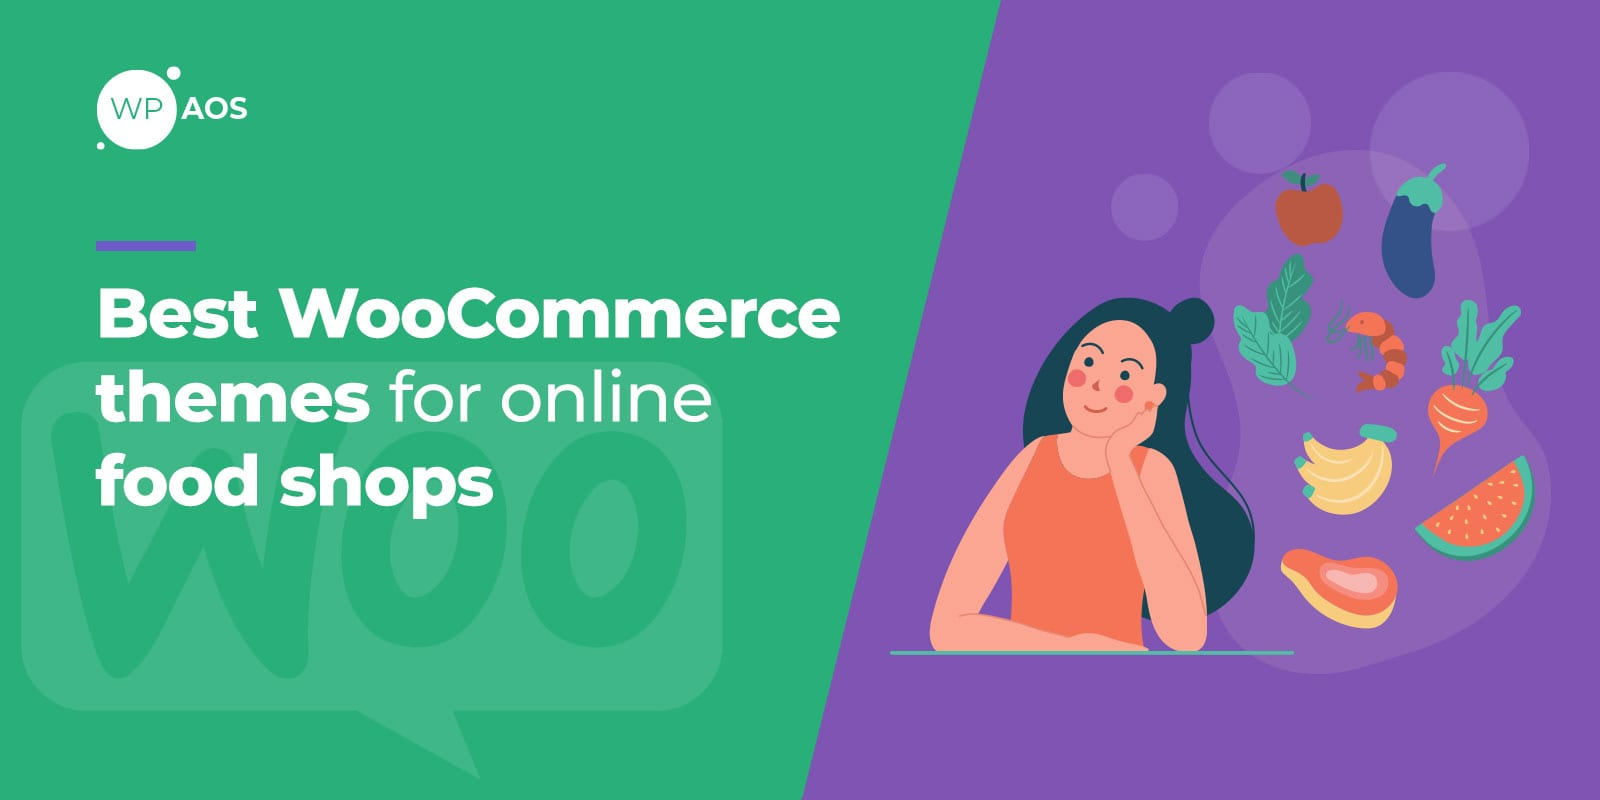 Best WooCommerce Themes for Online Food Shops, wpaos